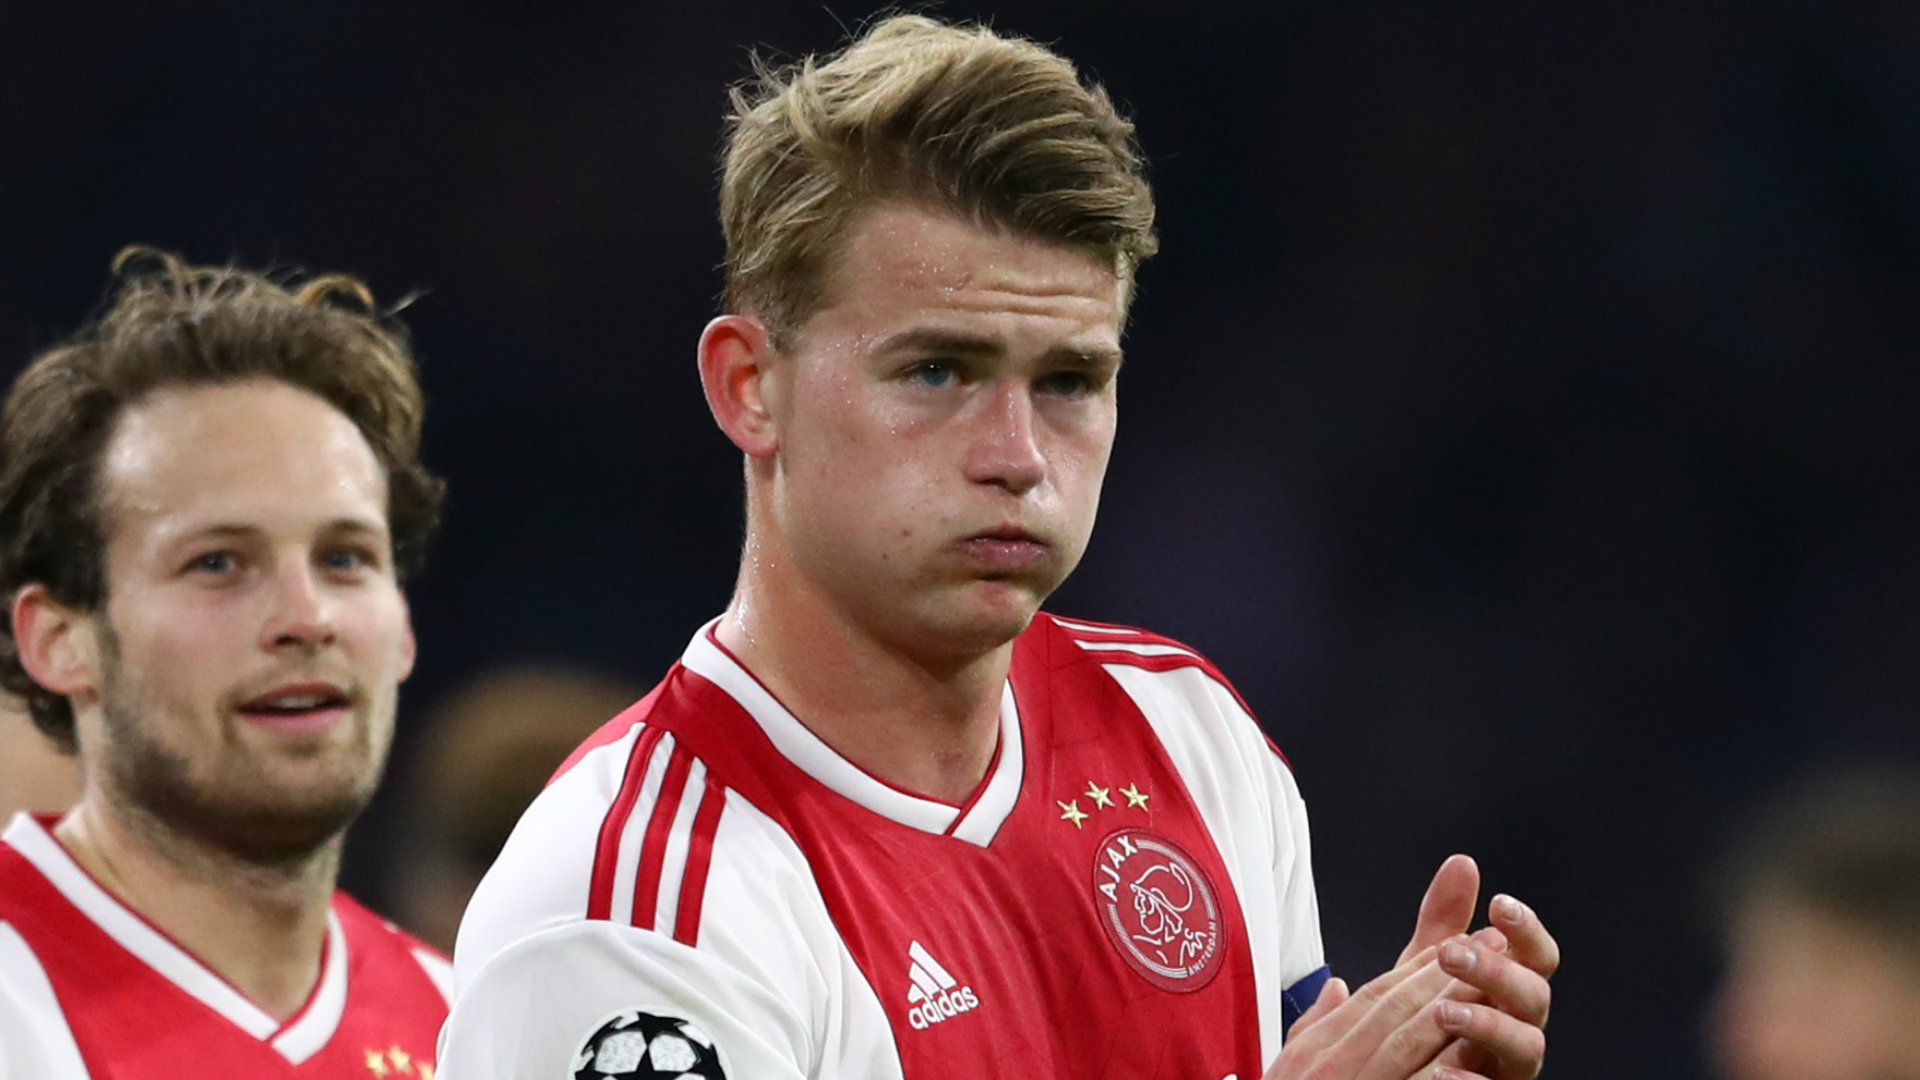 Matthijs de Ligt still does not understand where a story about Manchester United not wanting to sign him because of weight issues came from.